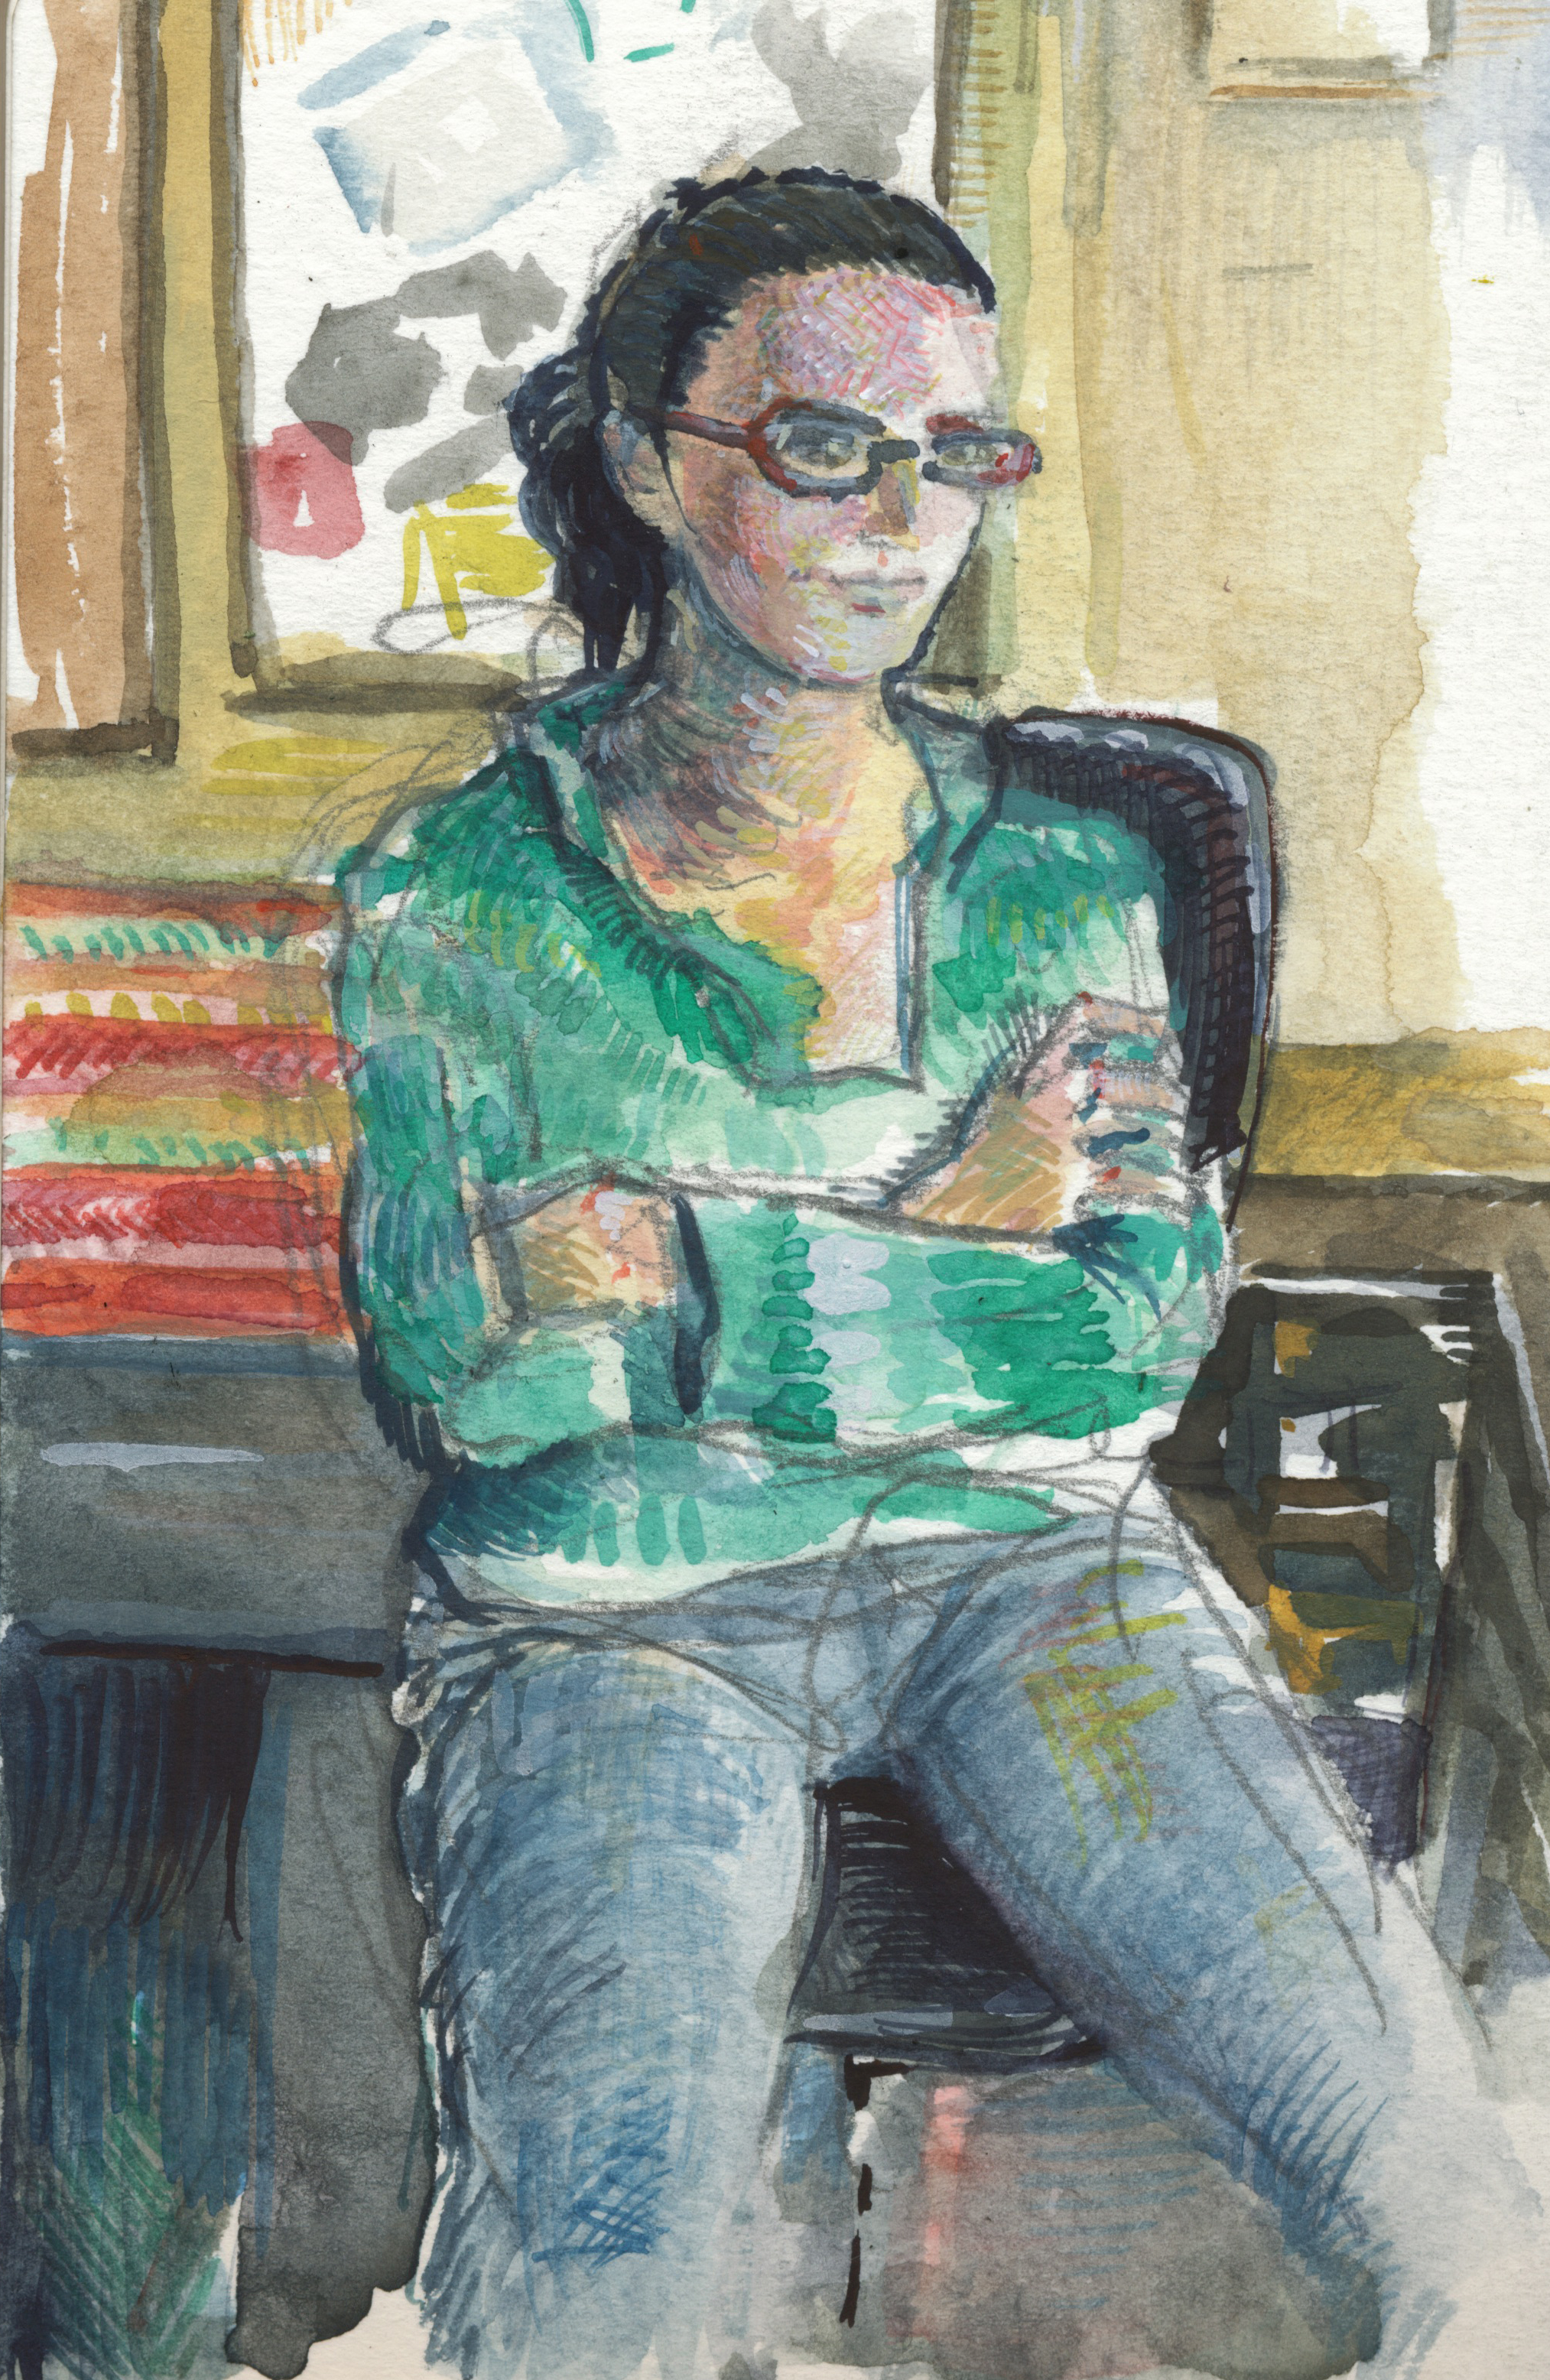 Caption: Megan Sukys in the Studio, Credit: Art by Britton Sukys